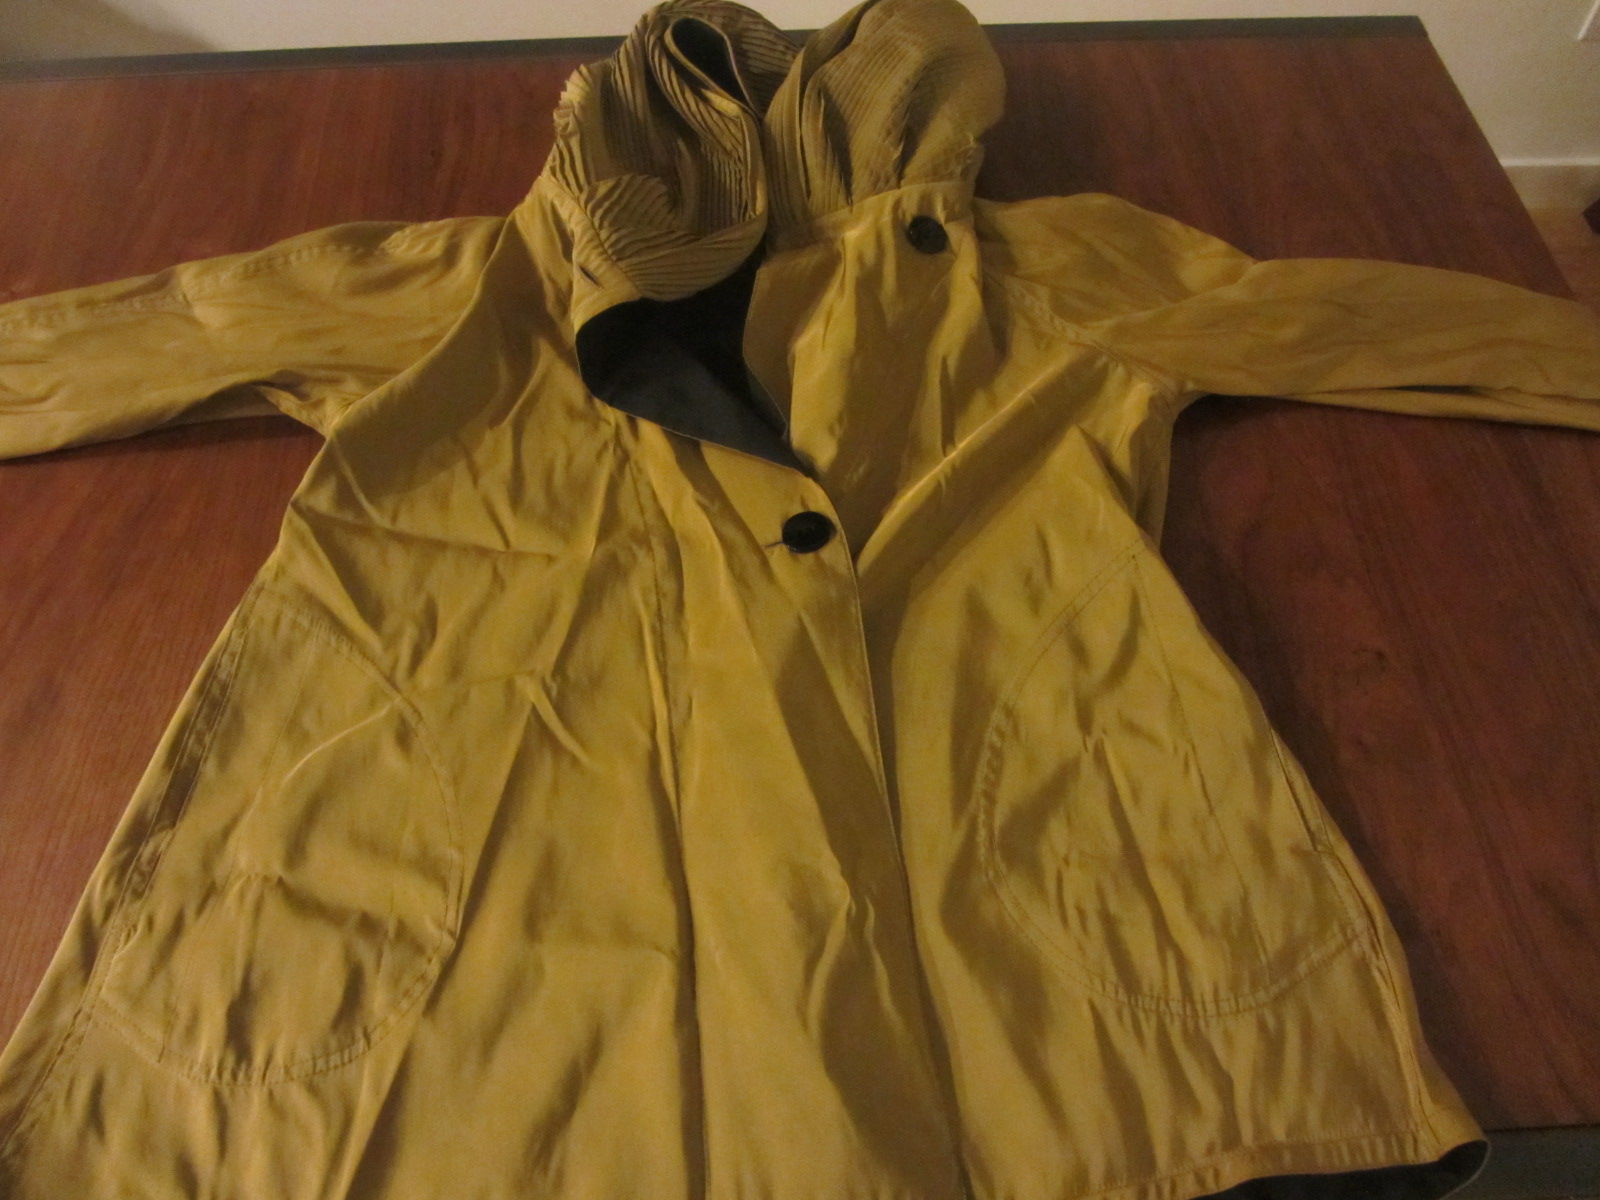 raincoat unfolded